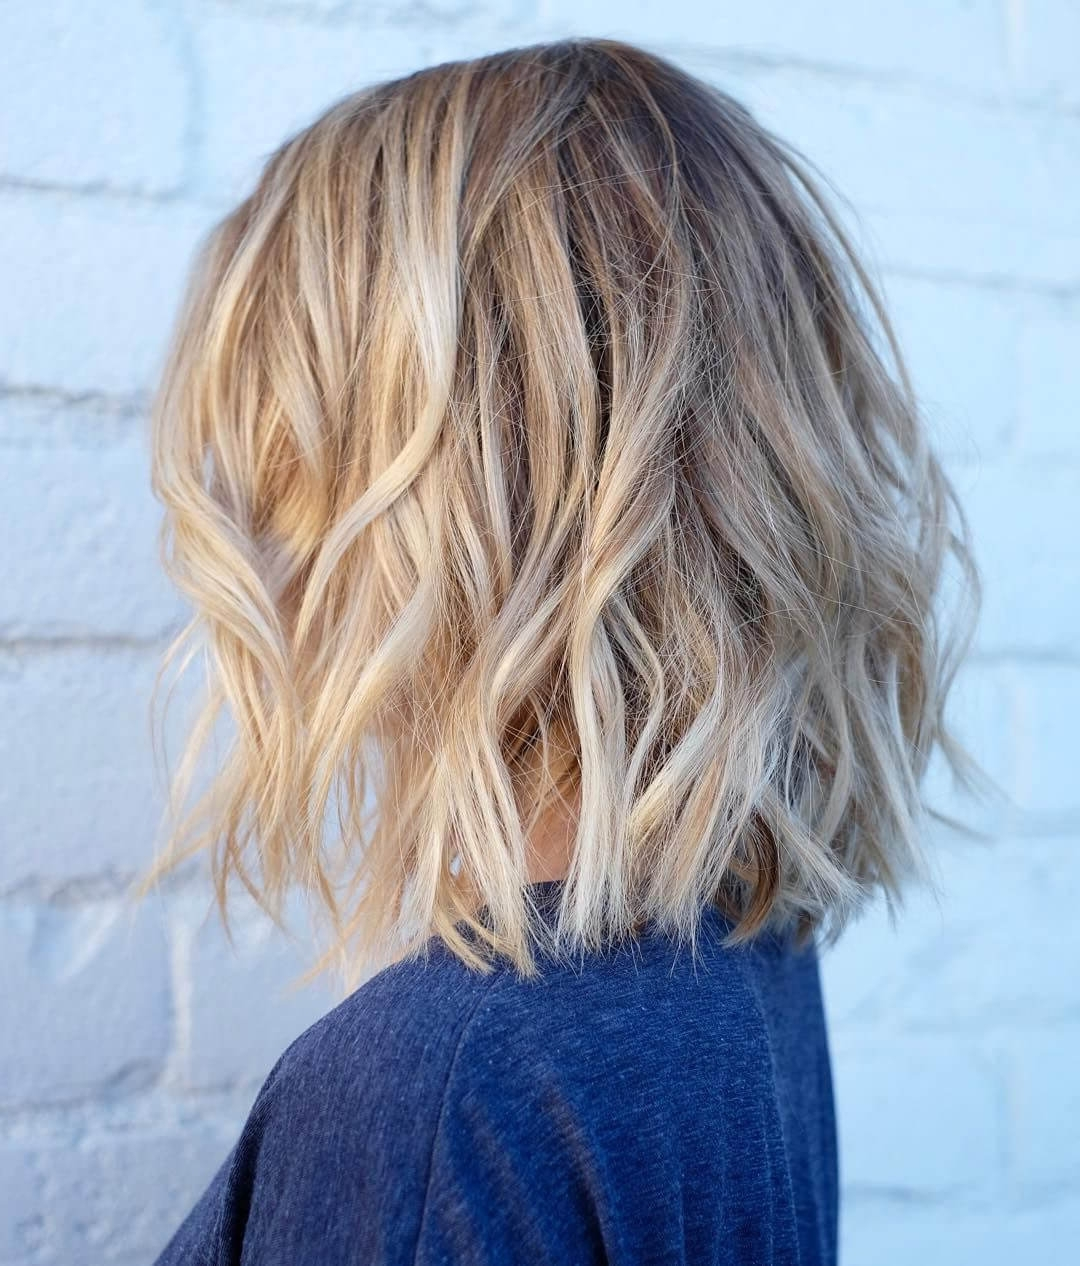 50 Fresh Short Blonde Hair Ideas To Update Your Style In 2018 With Widely Used Messy Blonde Lob Hairstyles (View 2 of 20)